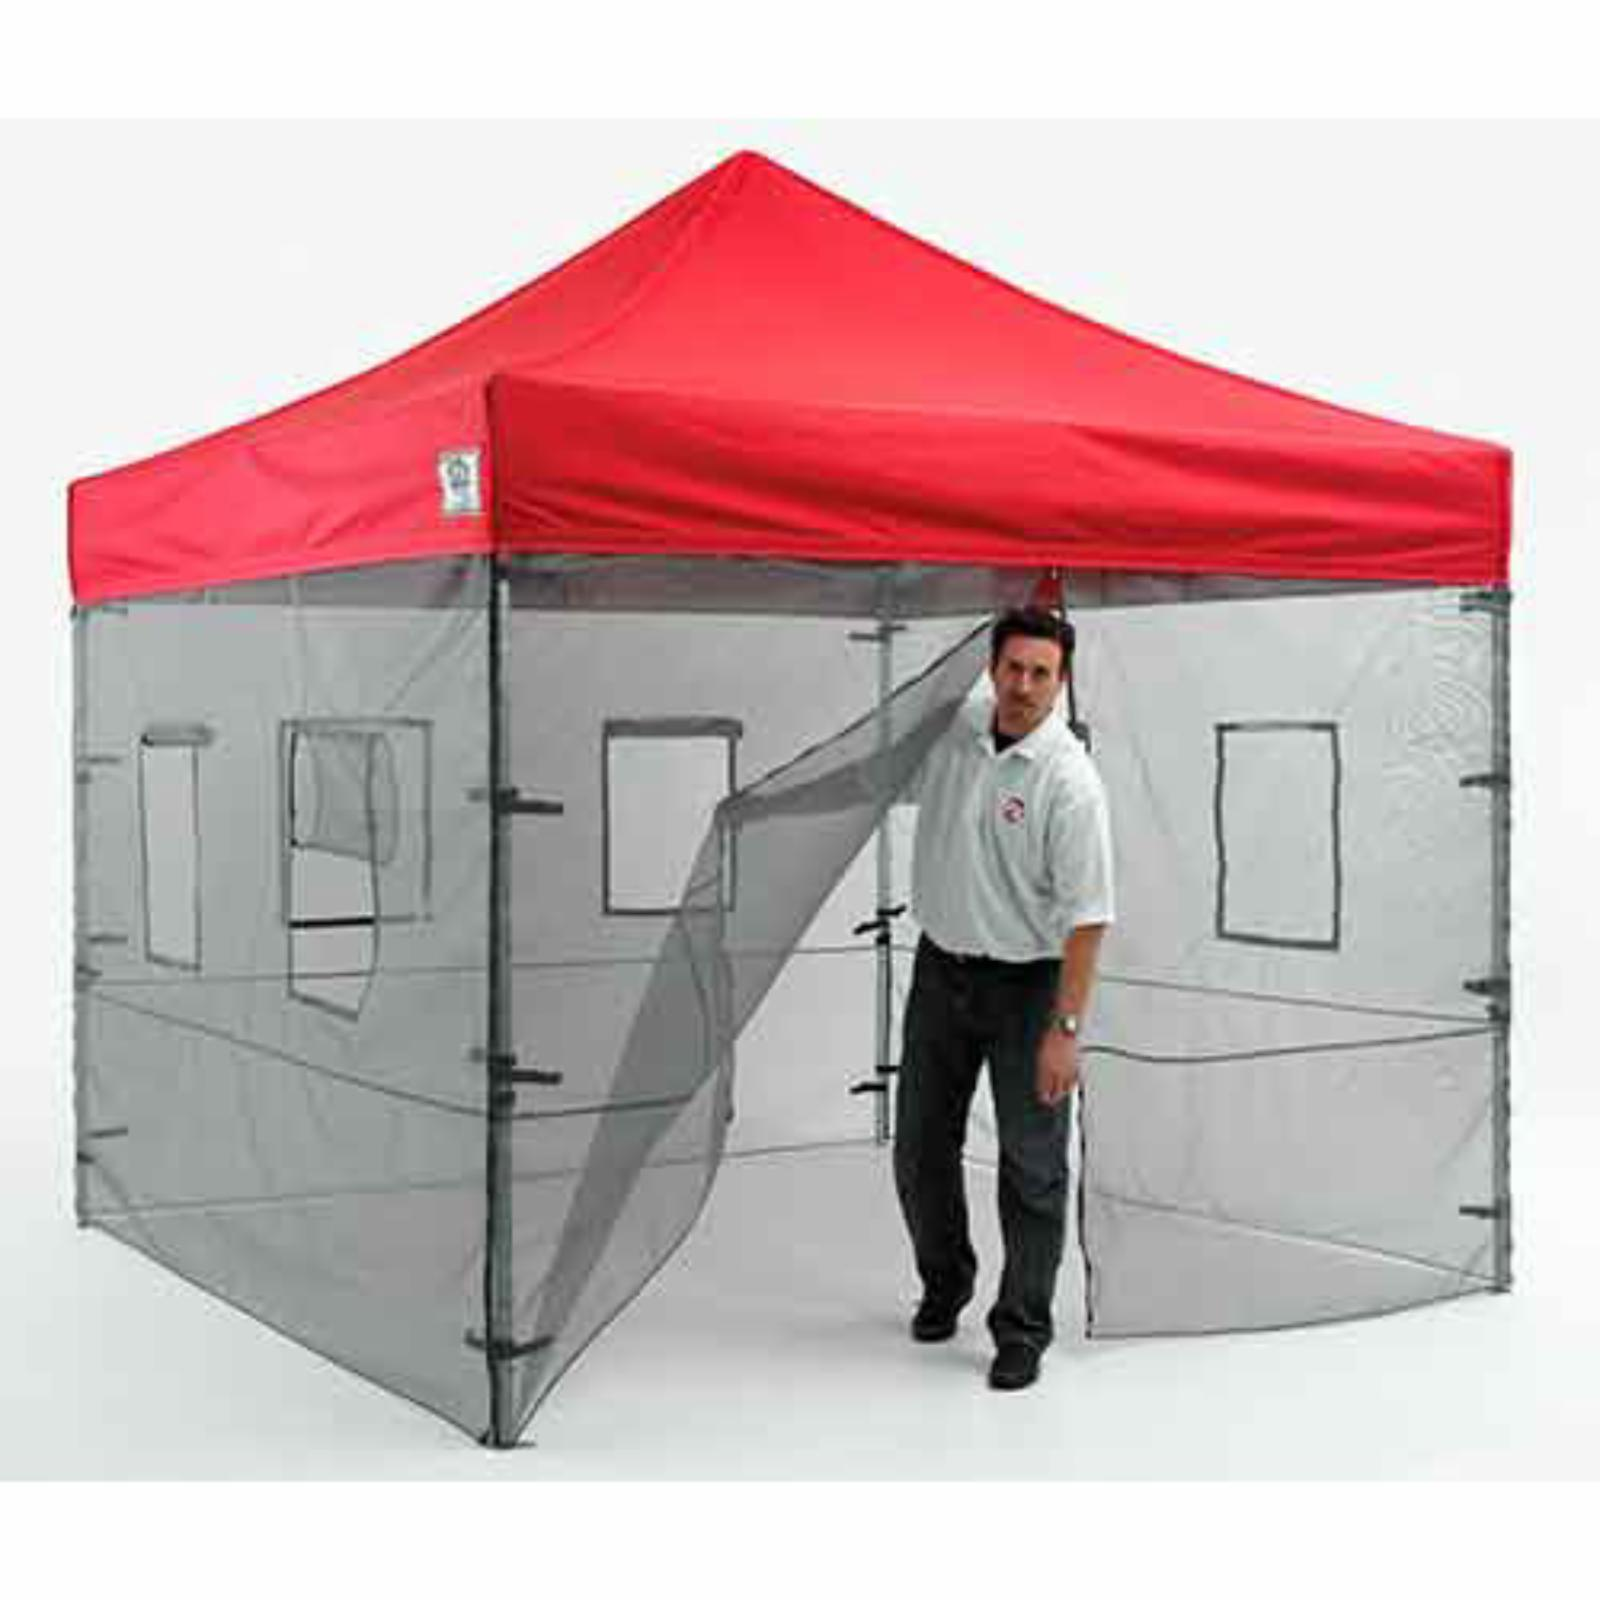 IMPACT Canopy 10x10 ft. Pop Up Canopy Tent Sidewalls Food...